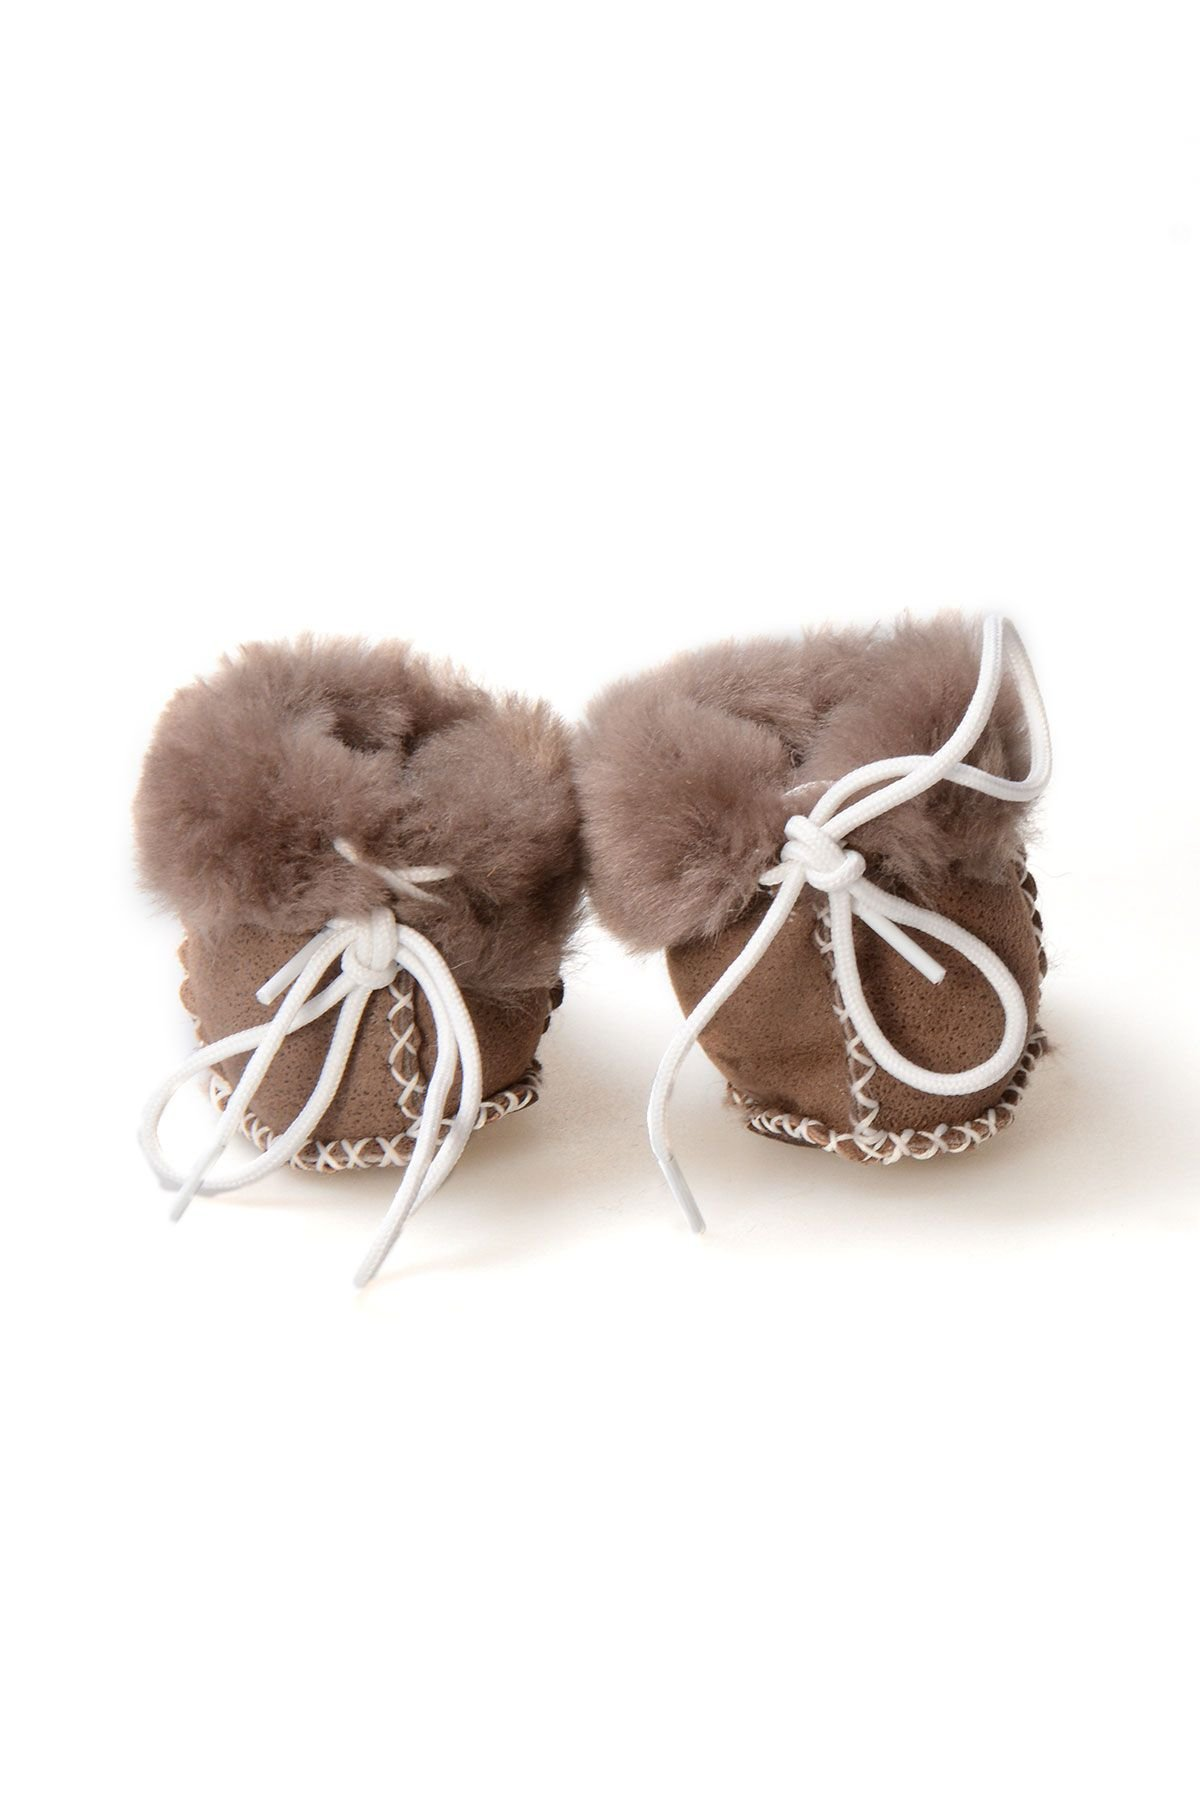 Pegia Babies Laced Shearling Booties 141105 Brown